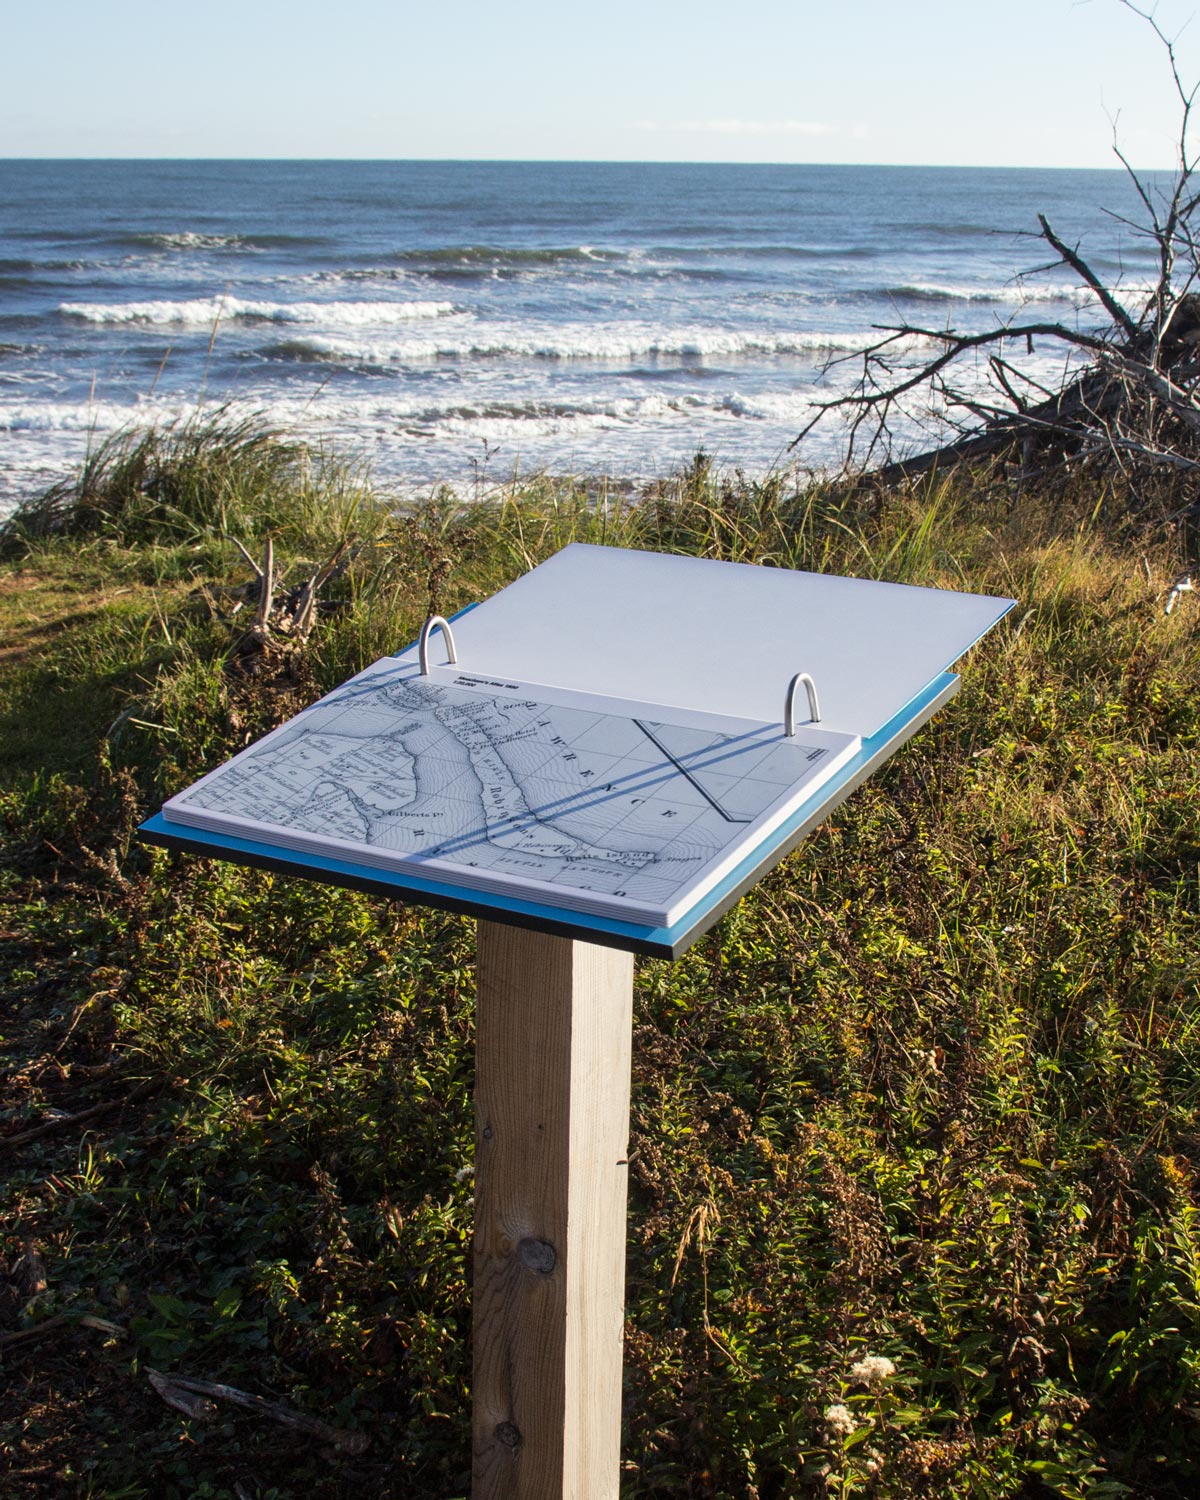 POWER OF SEA AND WIND Changes wrought on the landscape are interpreted in a flip book that illustrates—through map and satellite photography—the affects of natural and human forces.